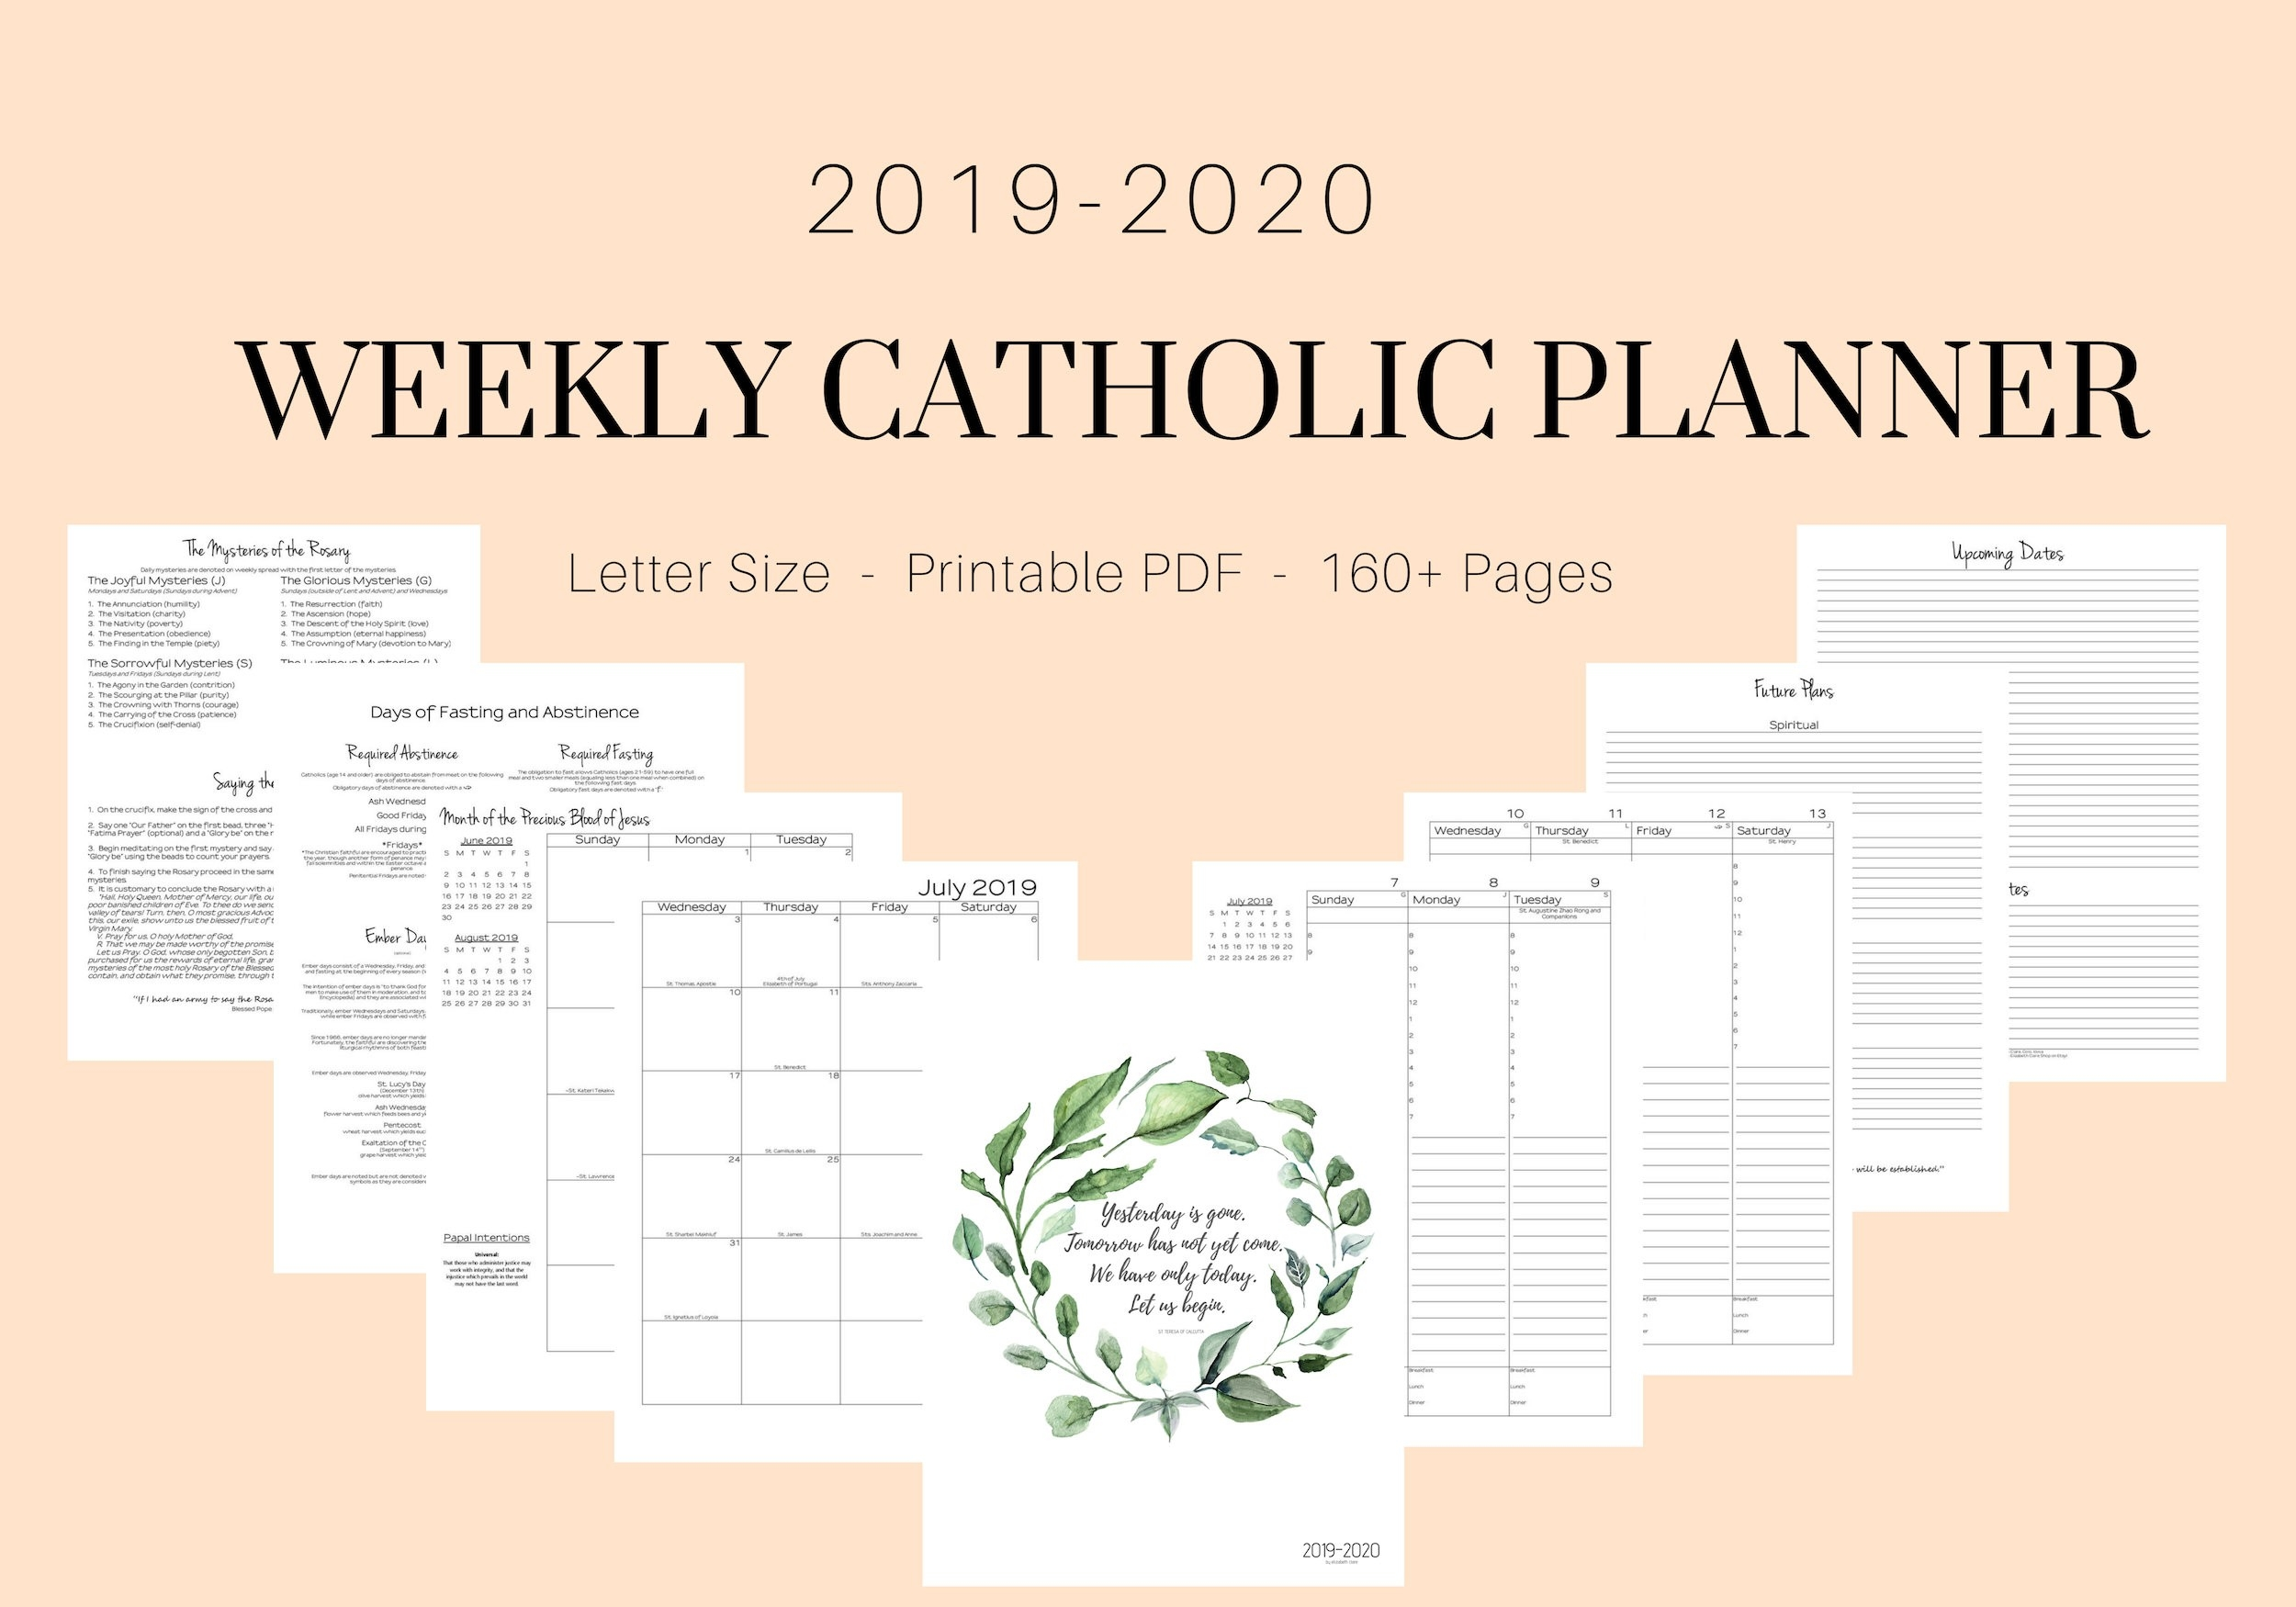 2019 - 2020 Catholic Planner Weekly Printable: Daily Planner / Weekly  Calendar / Liturgical Planner / Printable Catholic Planner  Printable Liturgical Calendar For 2020